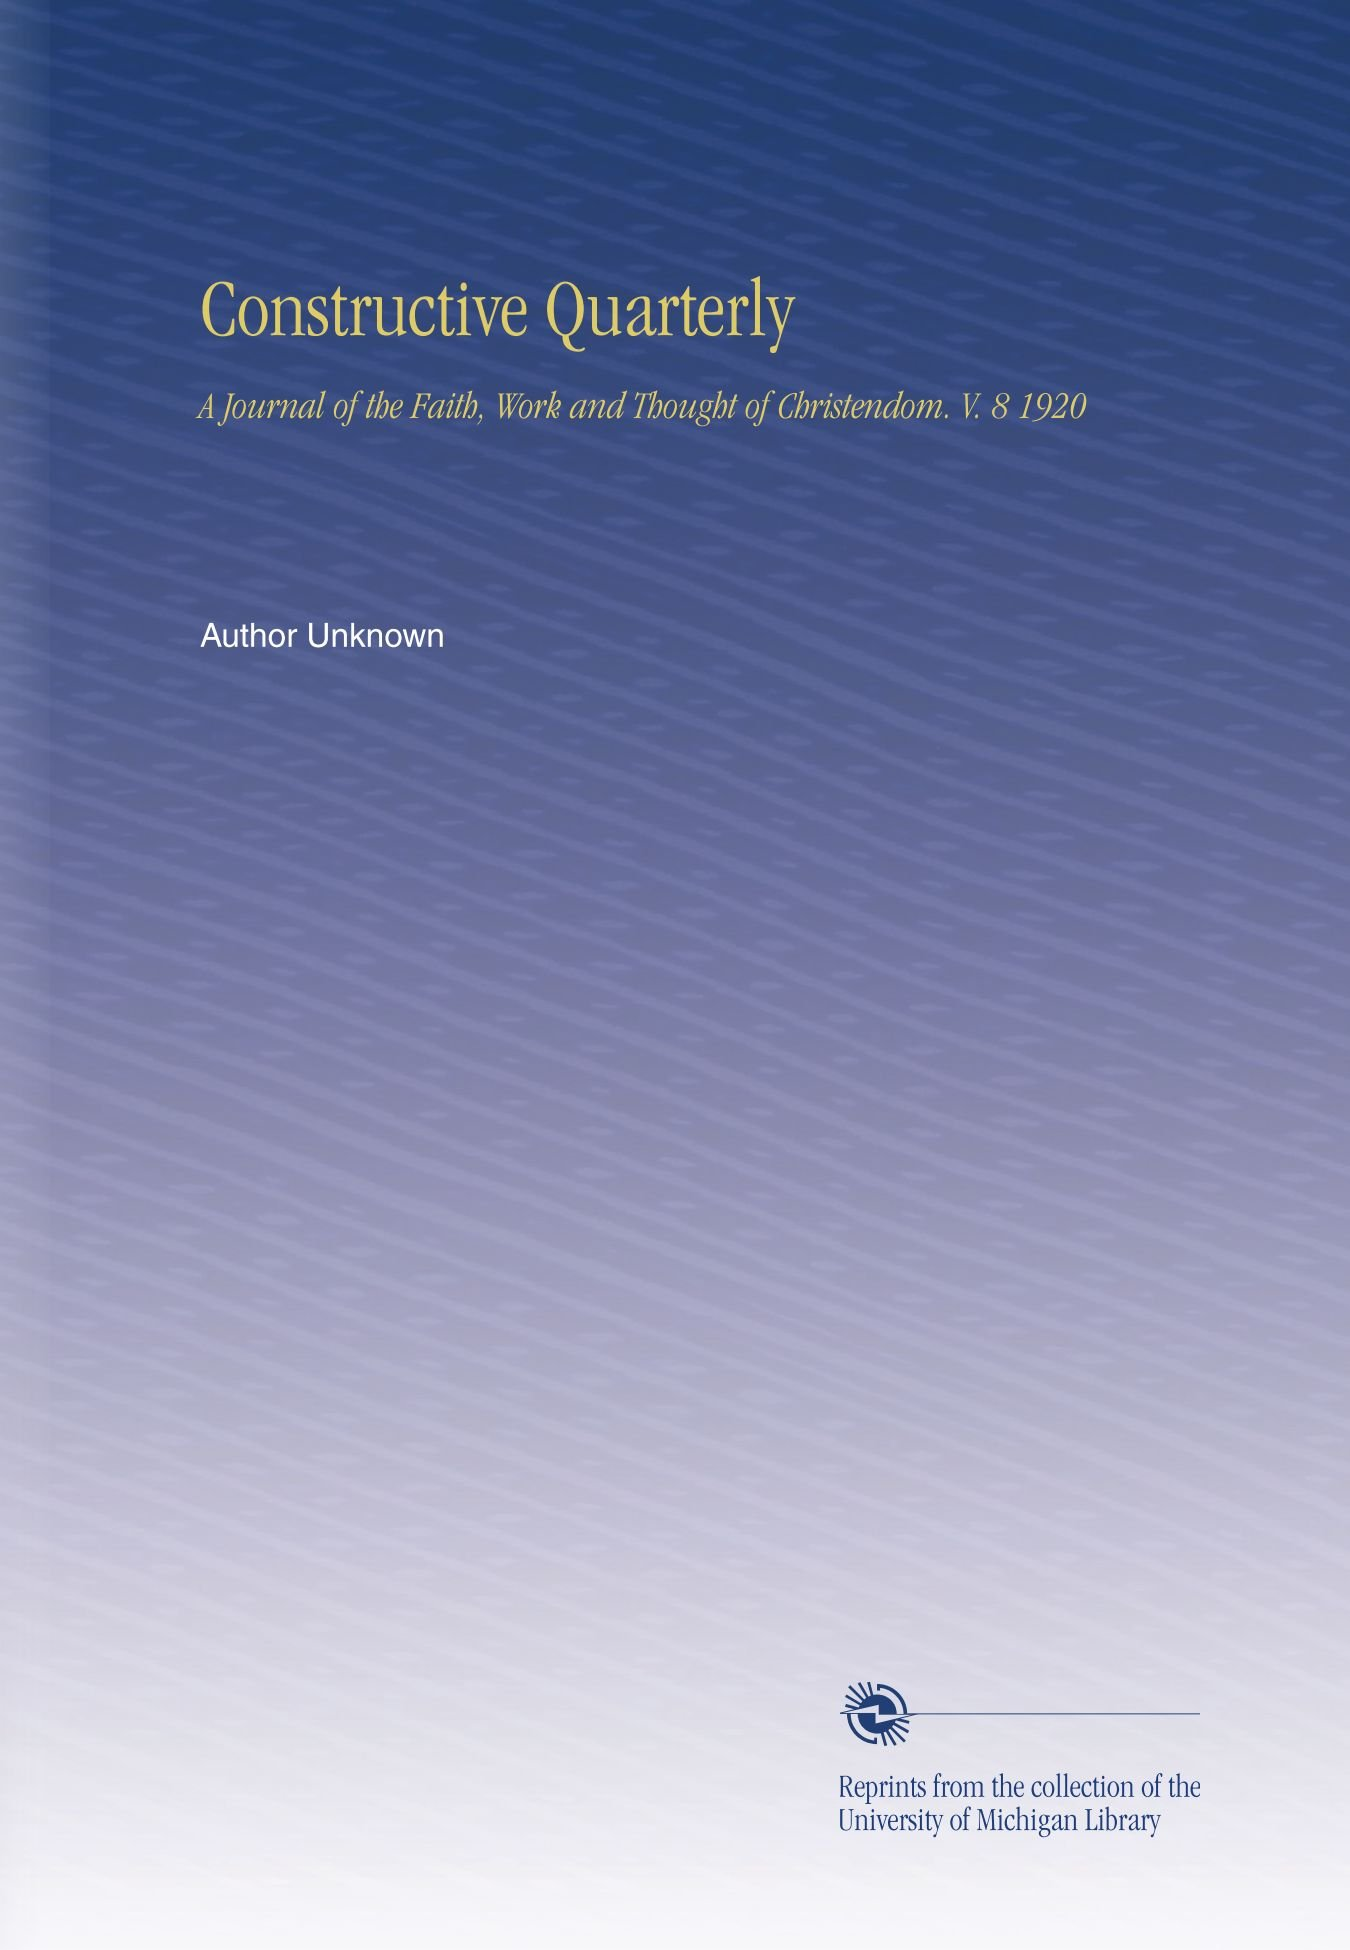 Download Constructive Quarterly: A Journal of the Faith, Work and Thought of Christendom. V. 8 1920 pdf